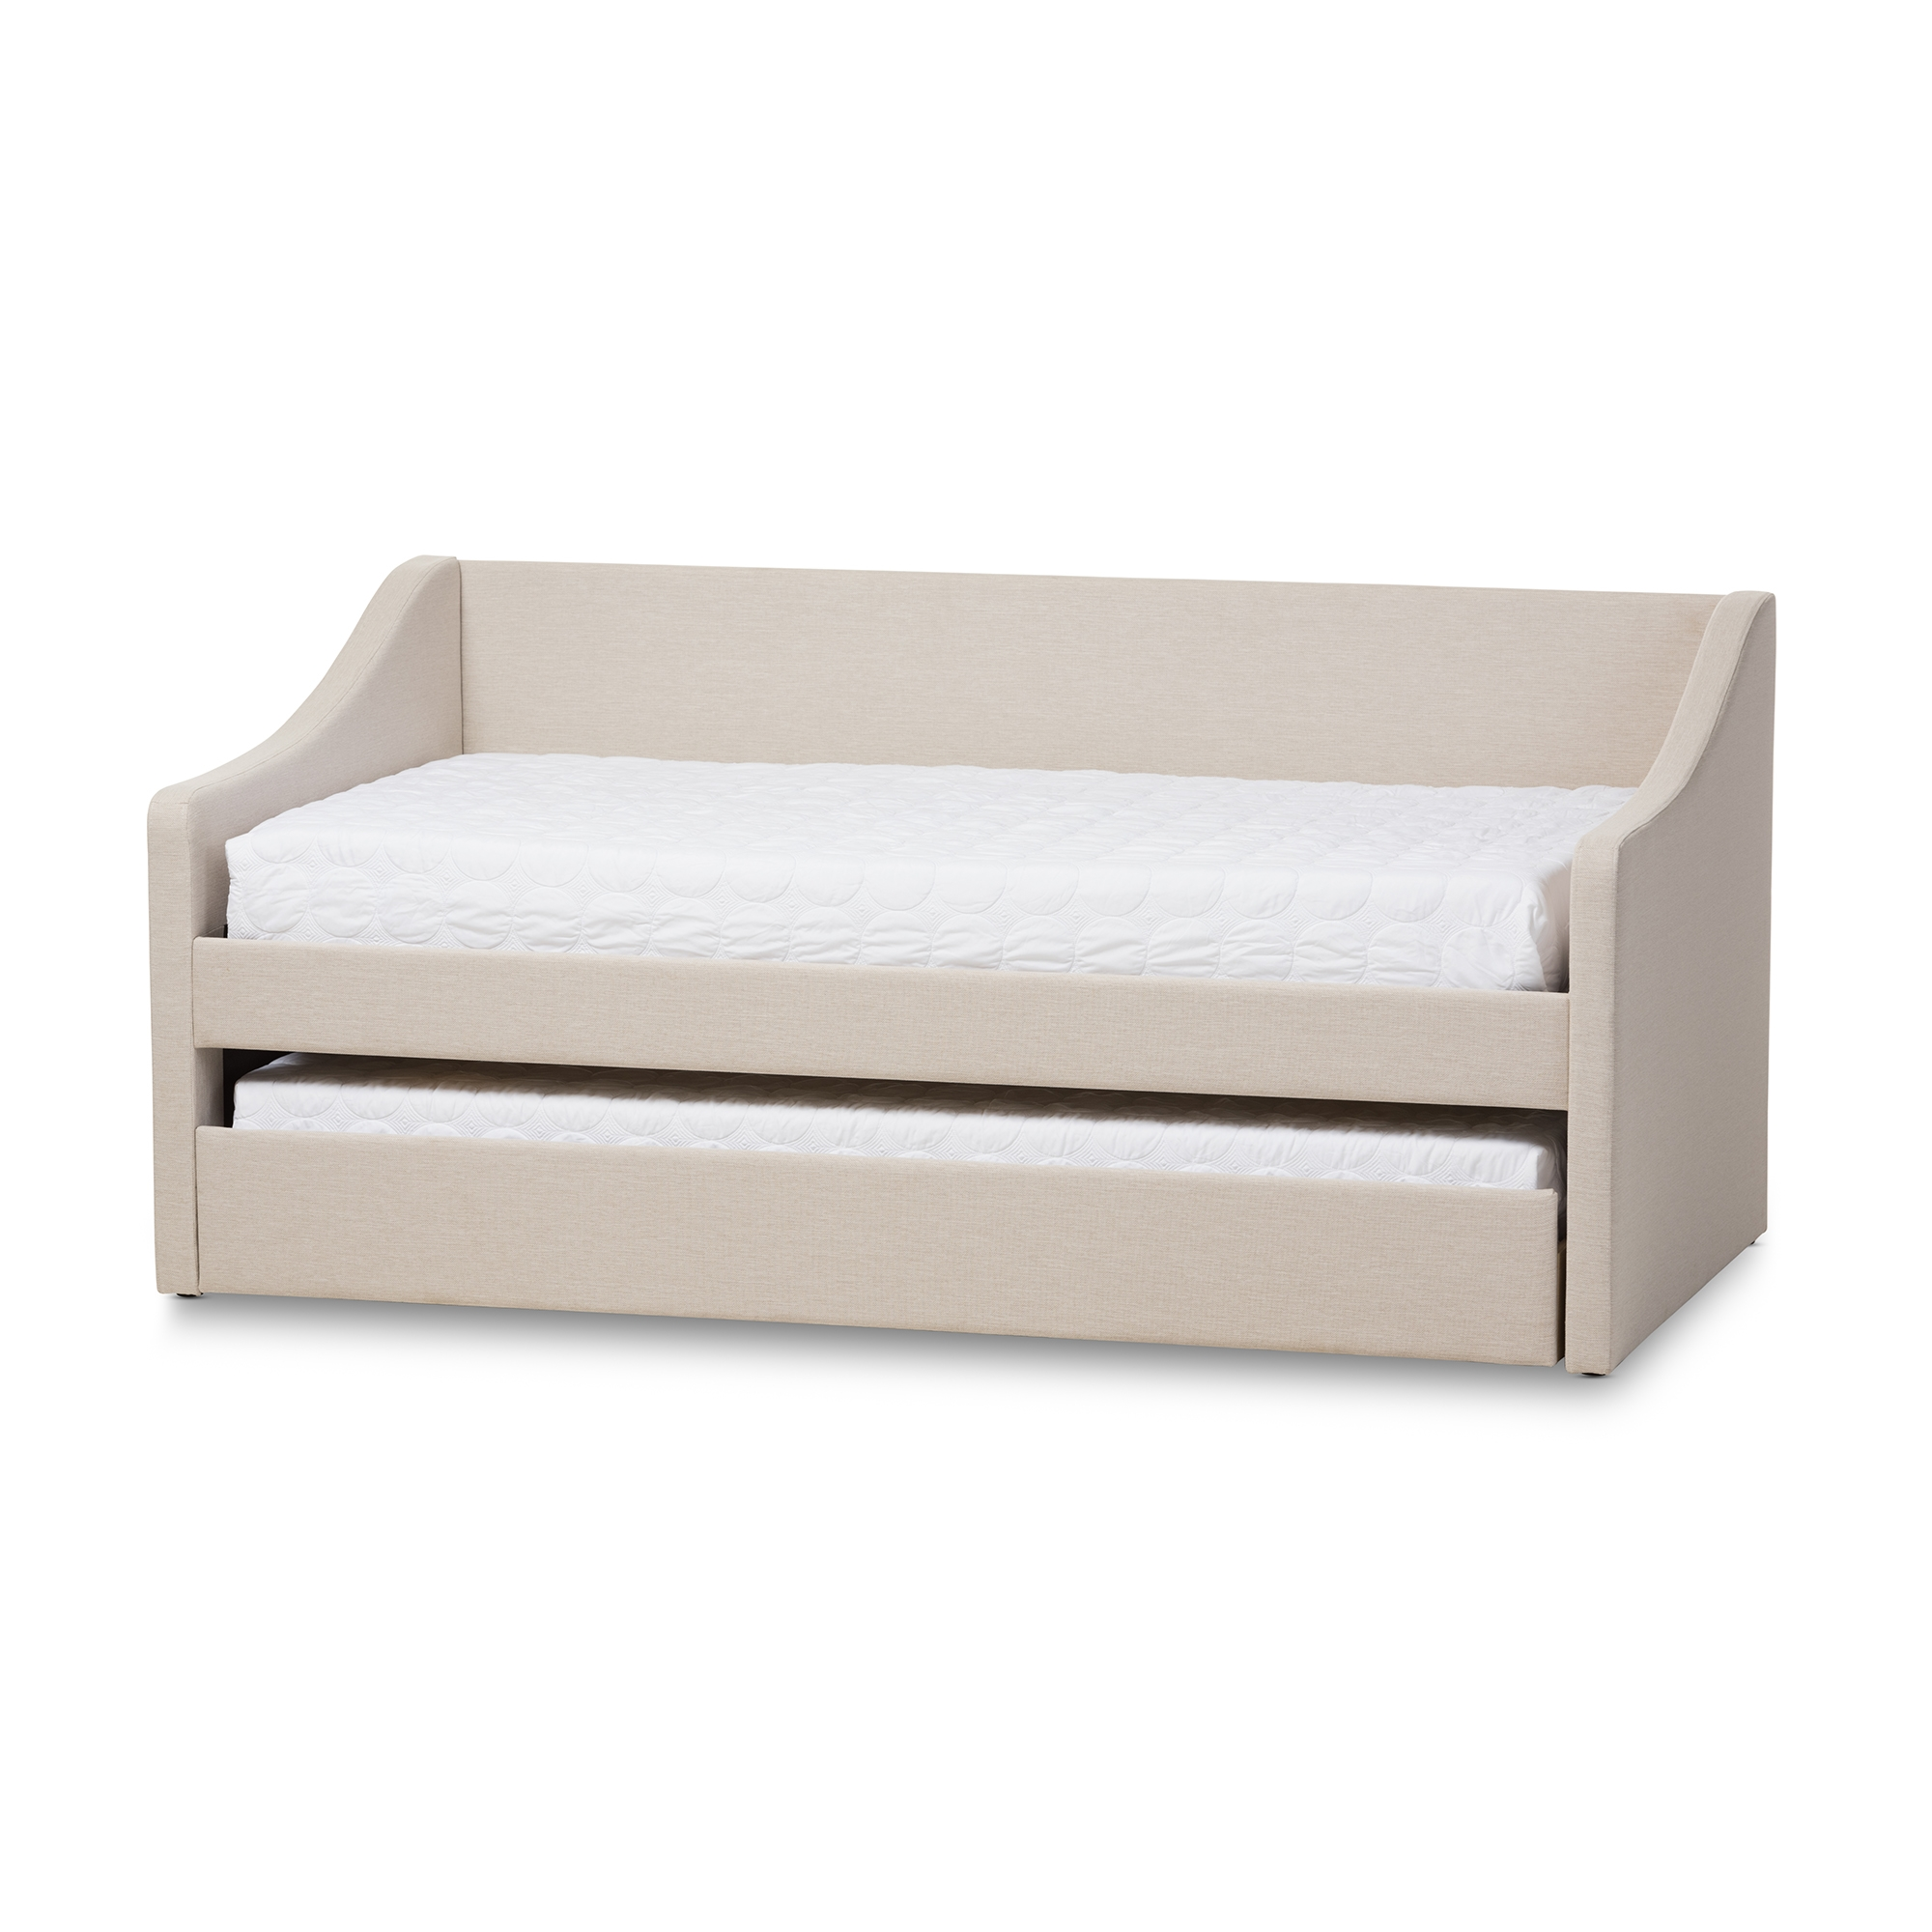 Charmant Baxton Studio Barnstorm Modern And Contemporary Beige Fabric Upholstered  Daybed With Guest Trundle Bed